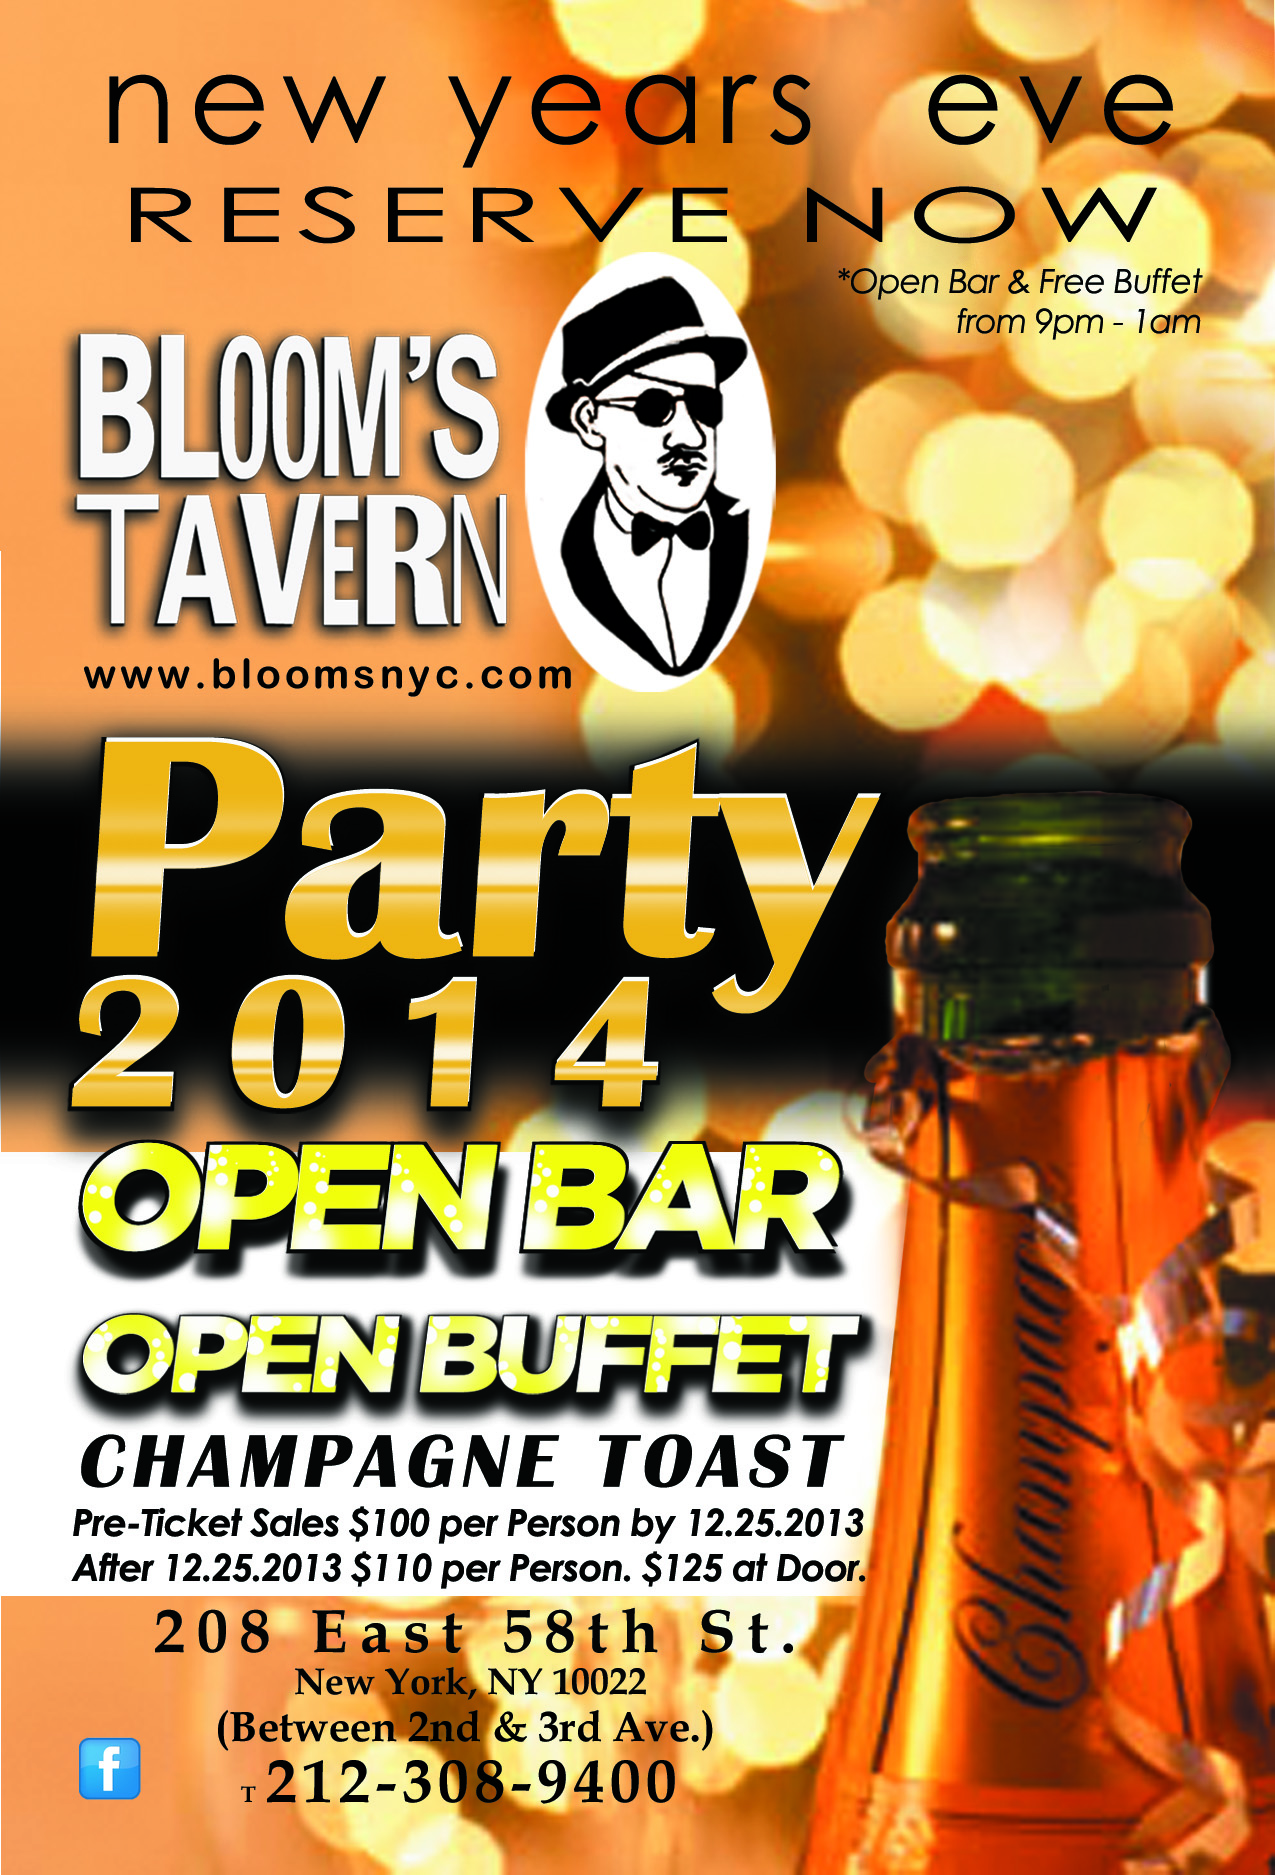 new years eve 2014 at blooms tavern murphguide nyc